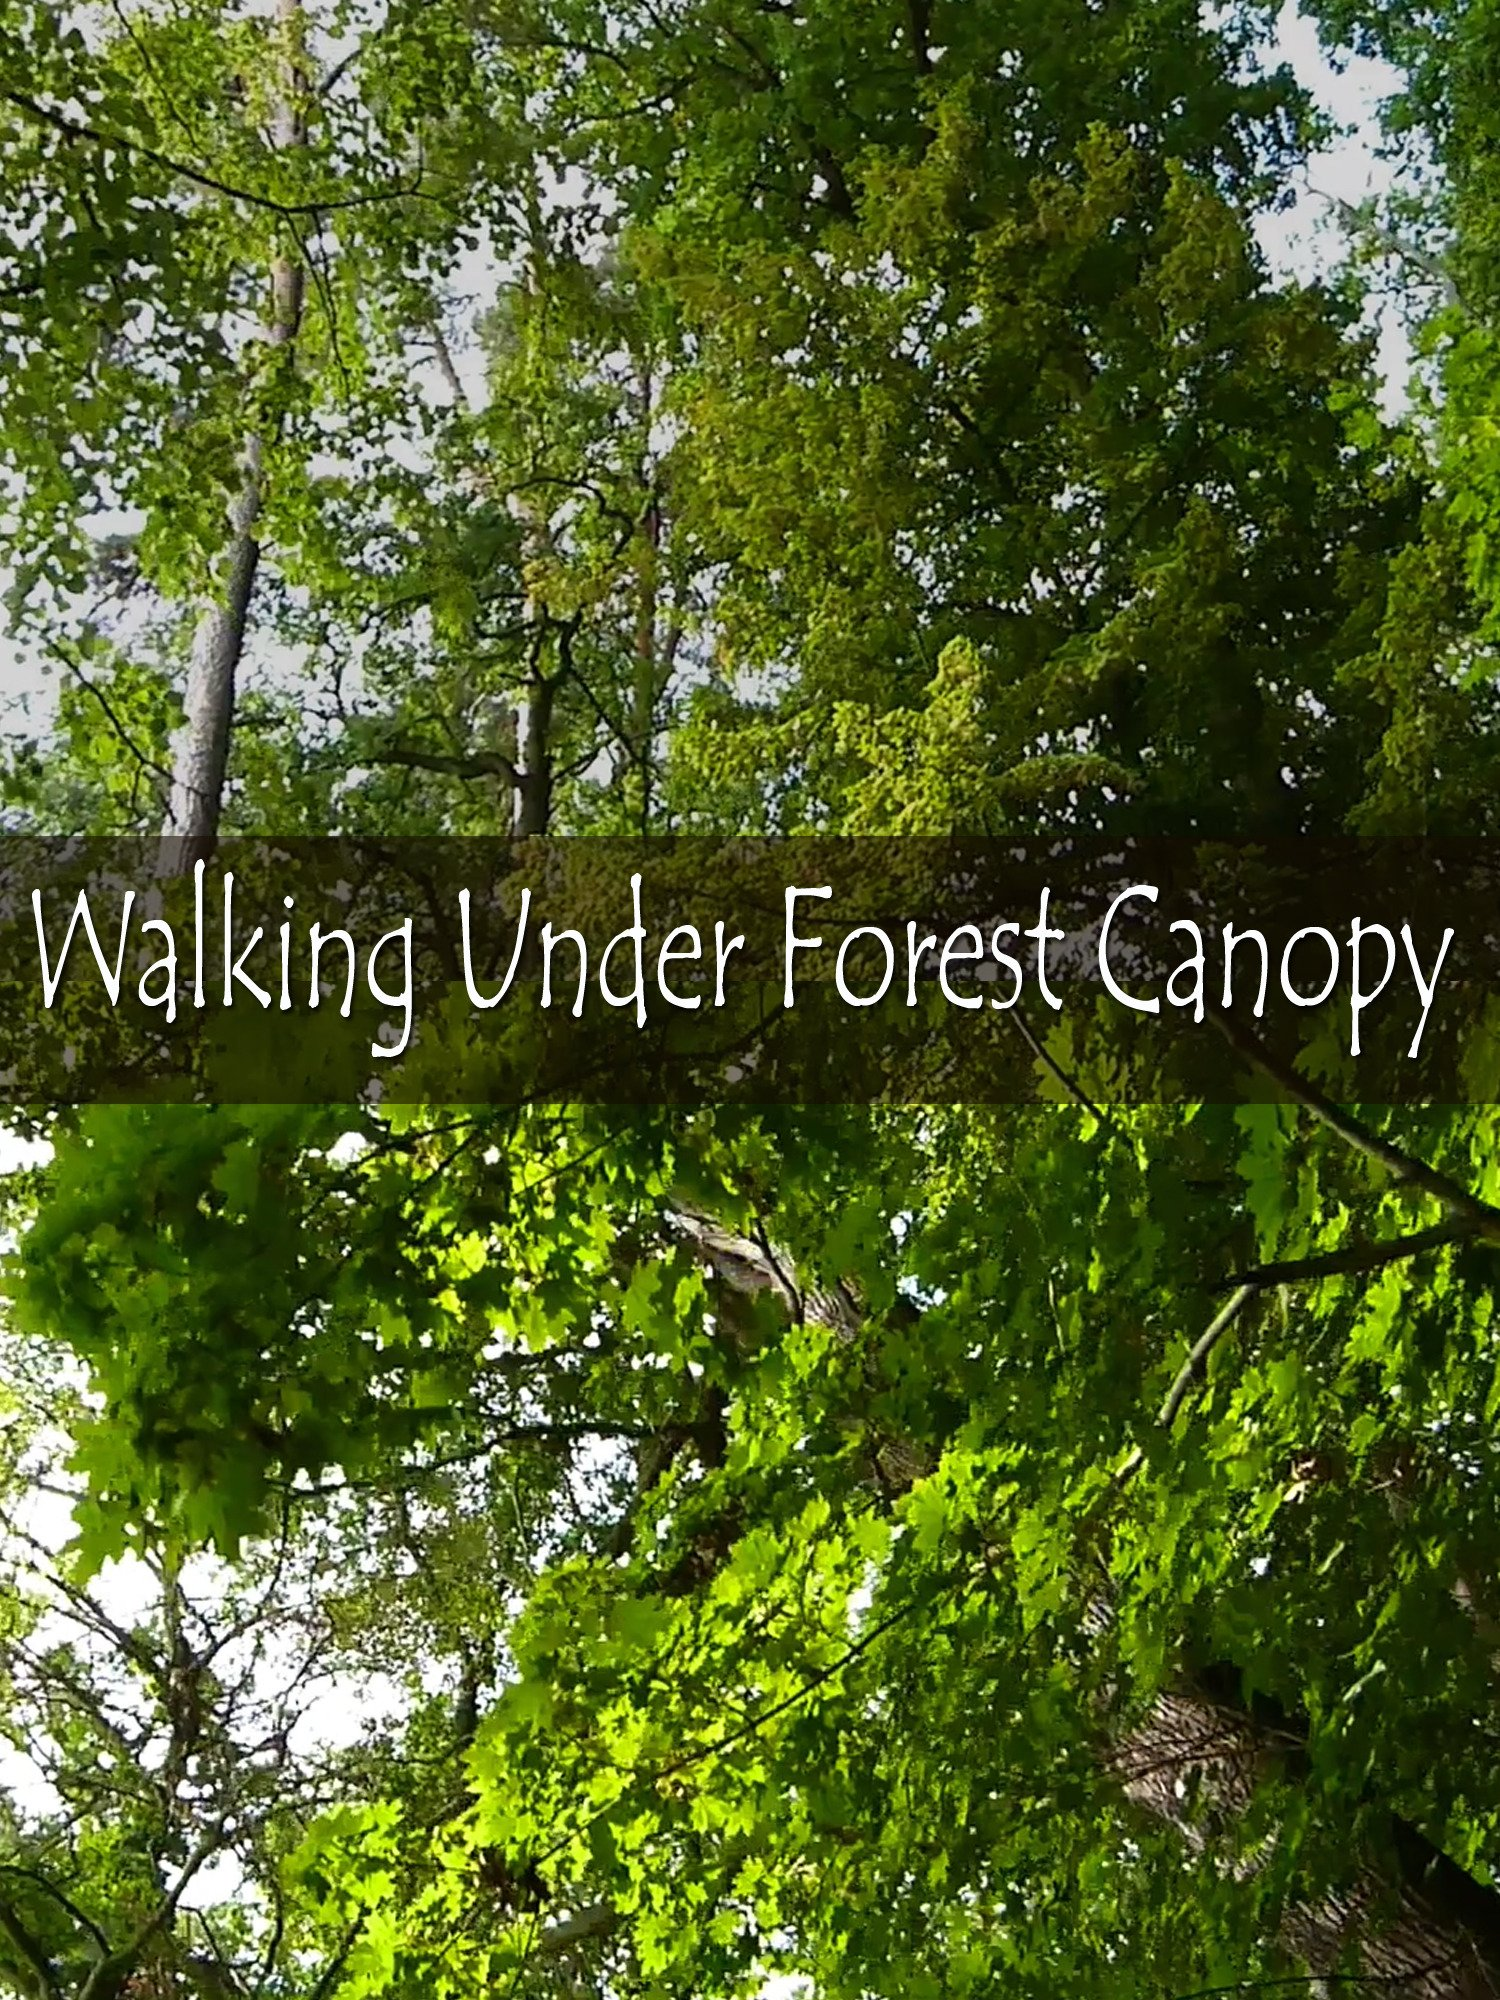 Walking Under Forest Canopy